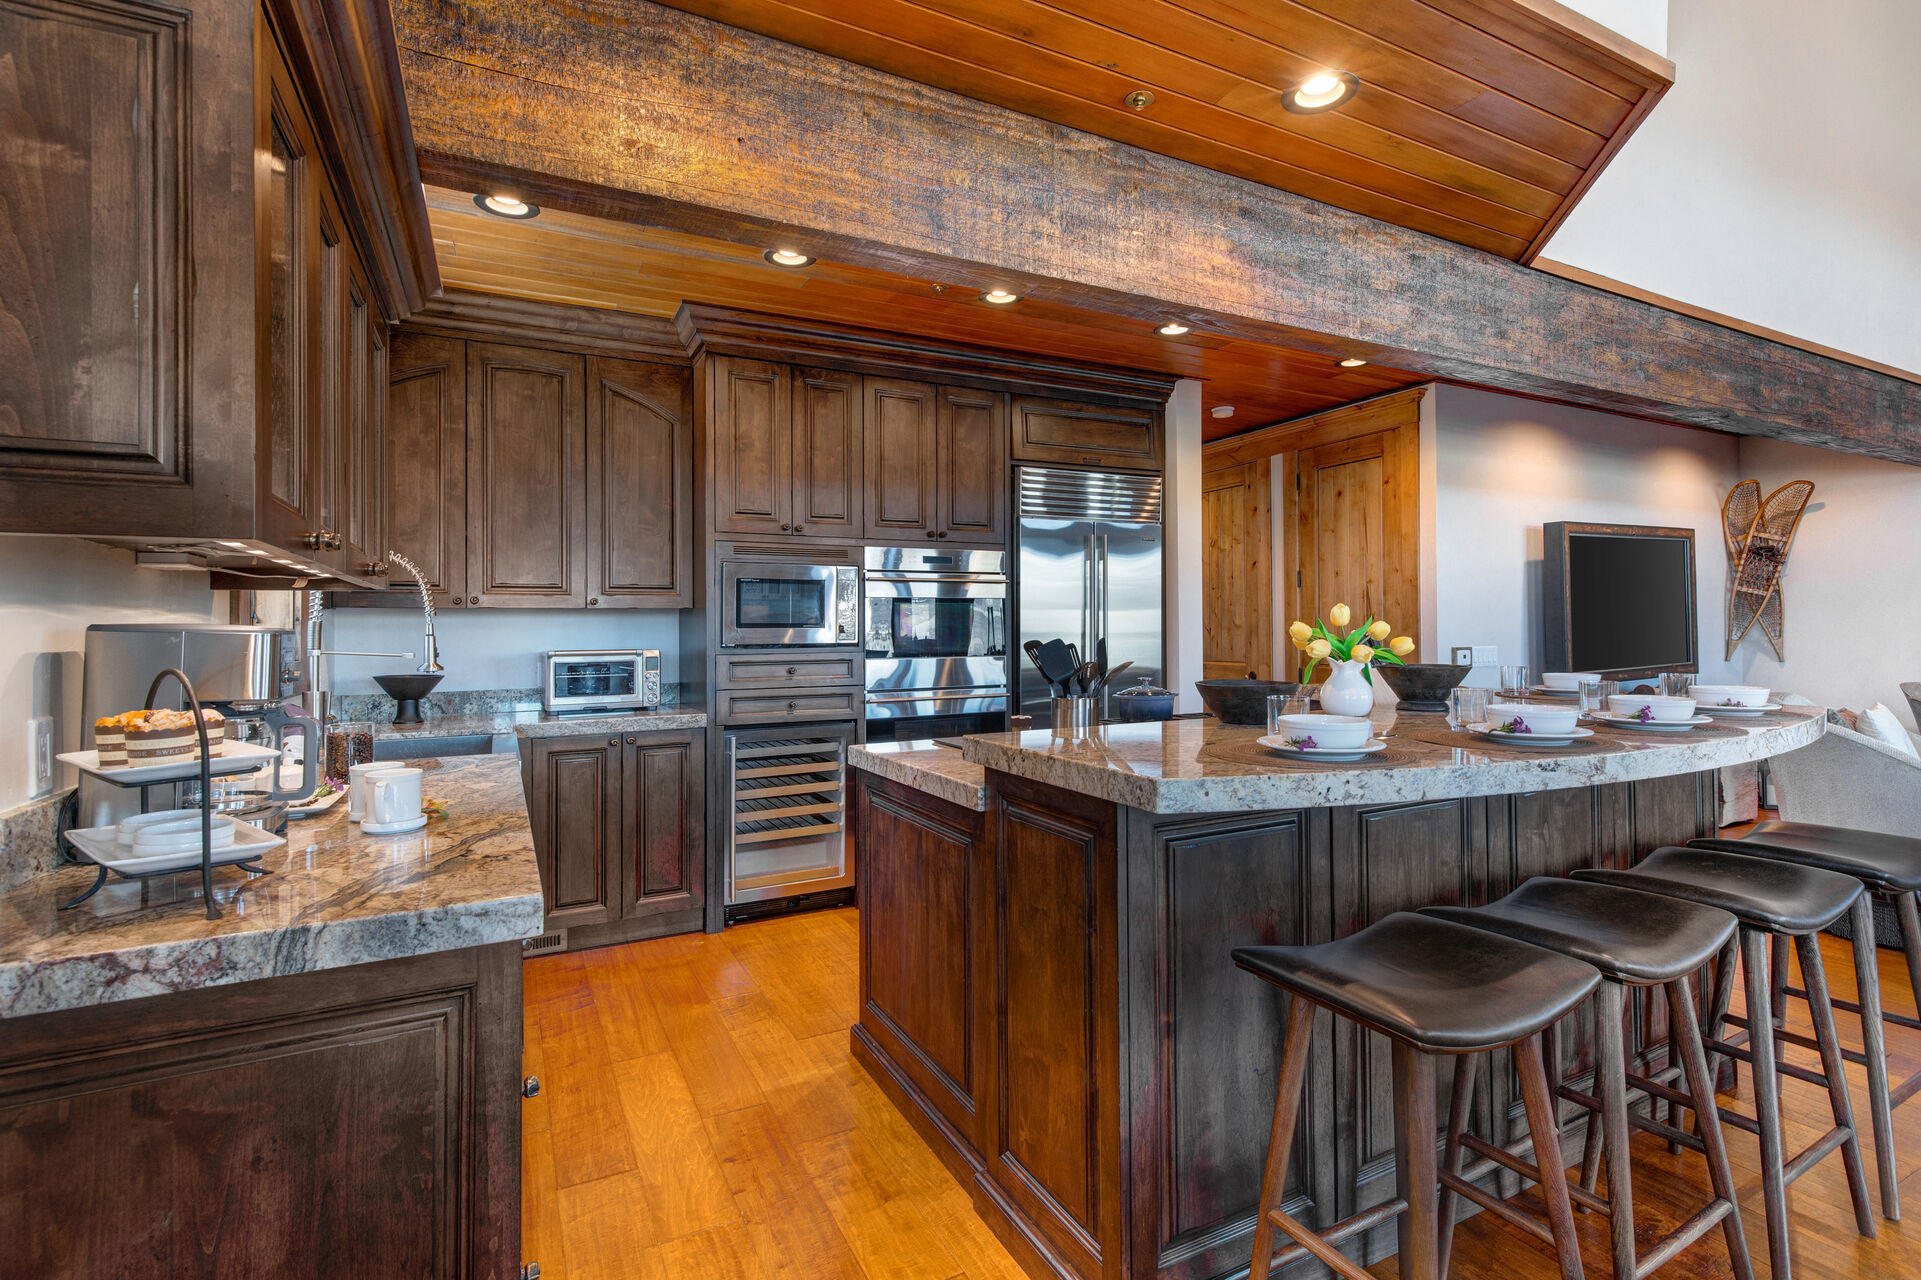 Gourmet Kitchen with Granite Counters and an Island with Seating for Six